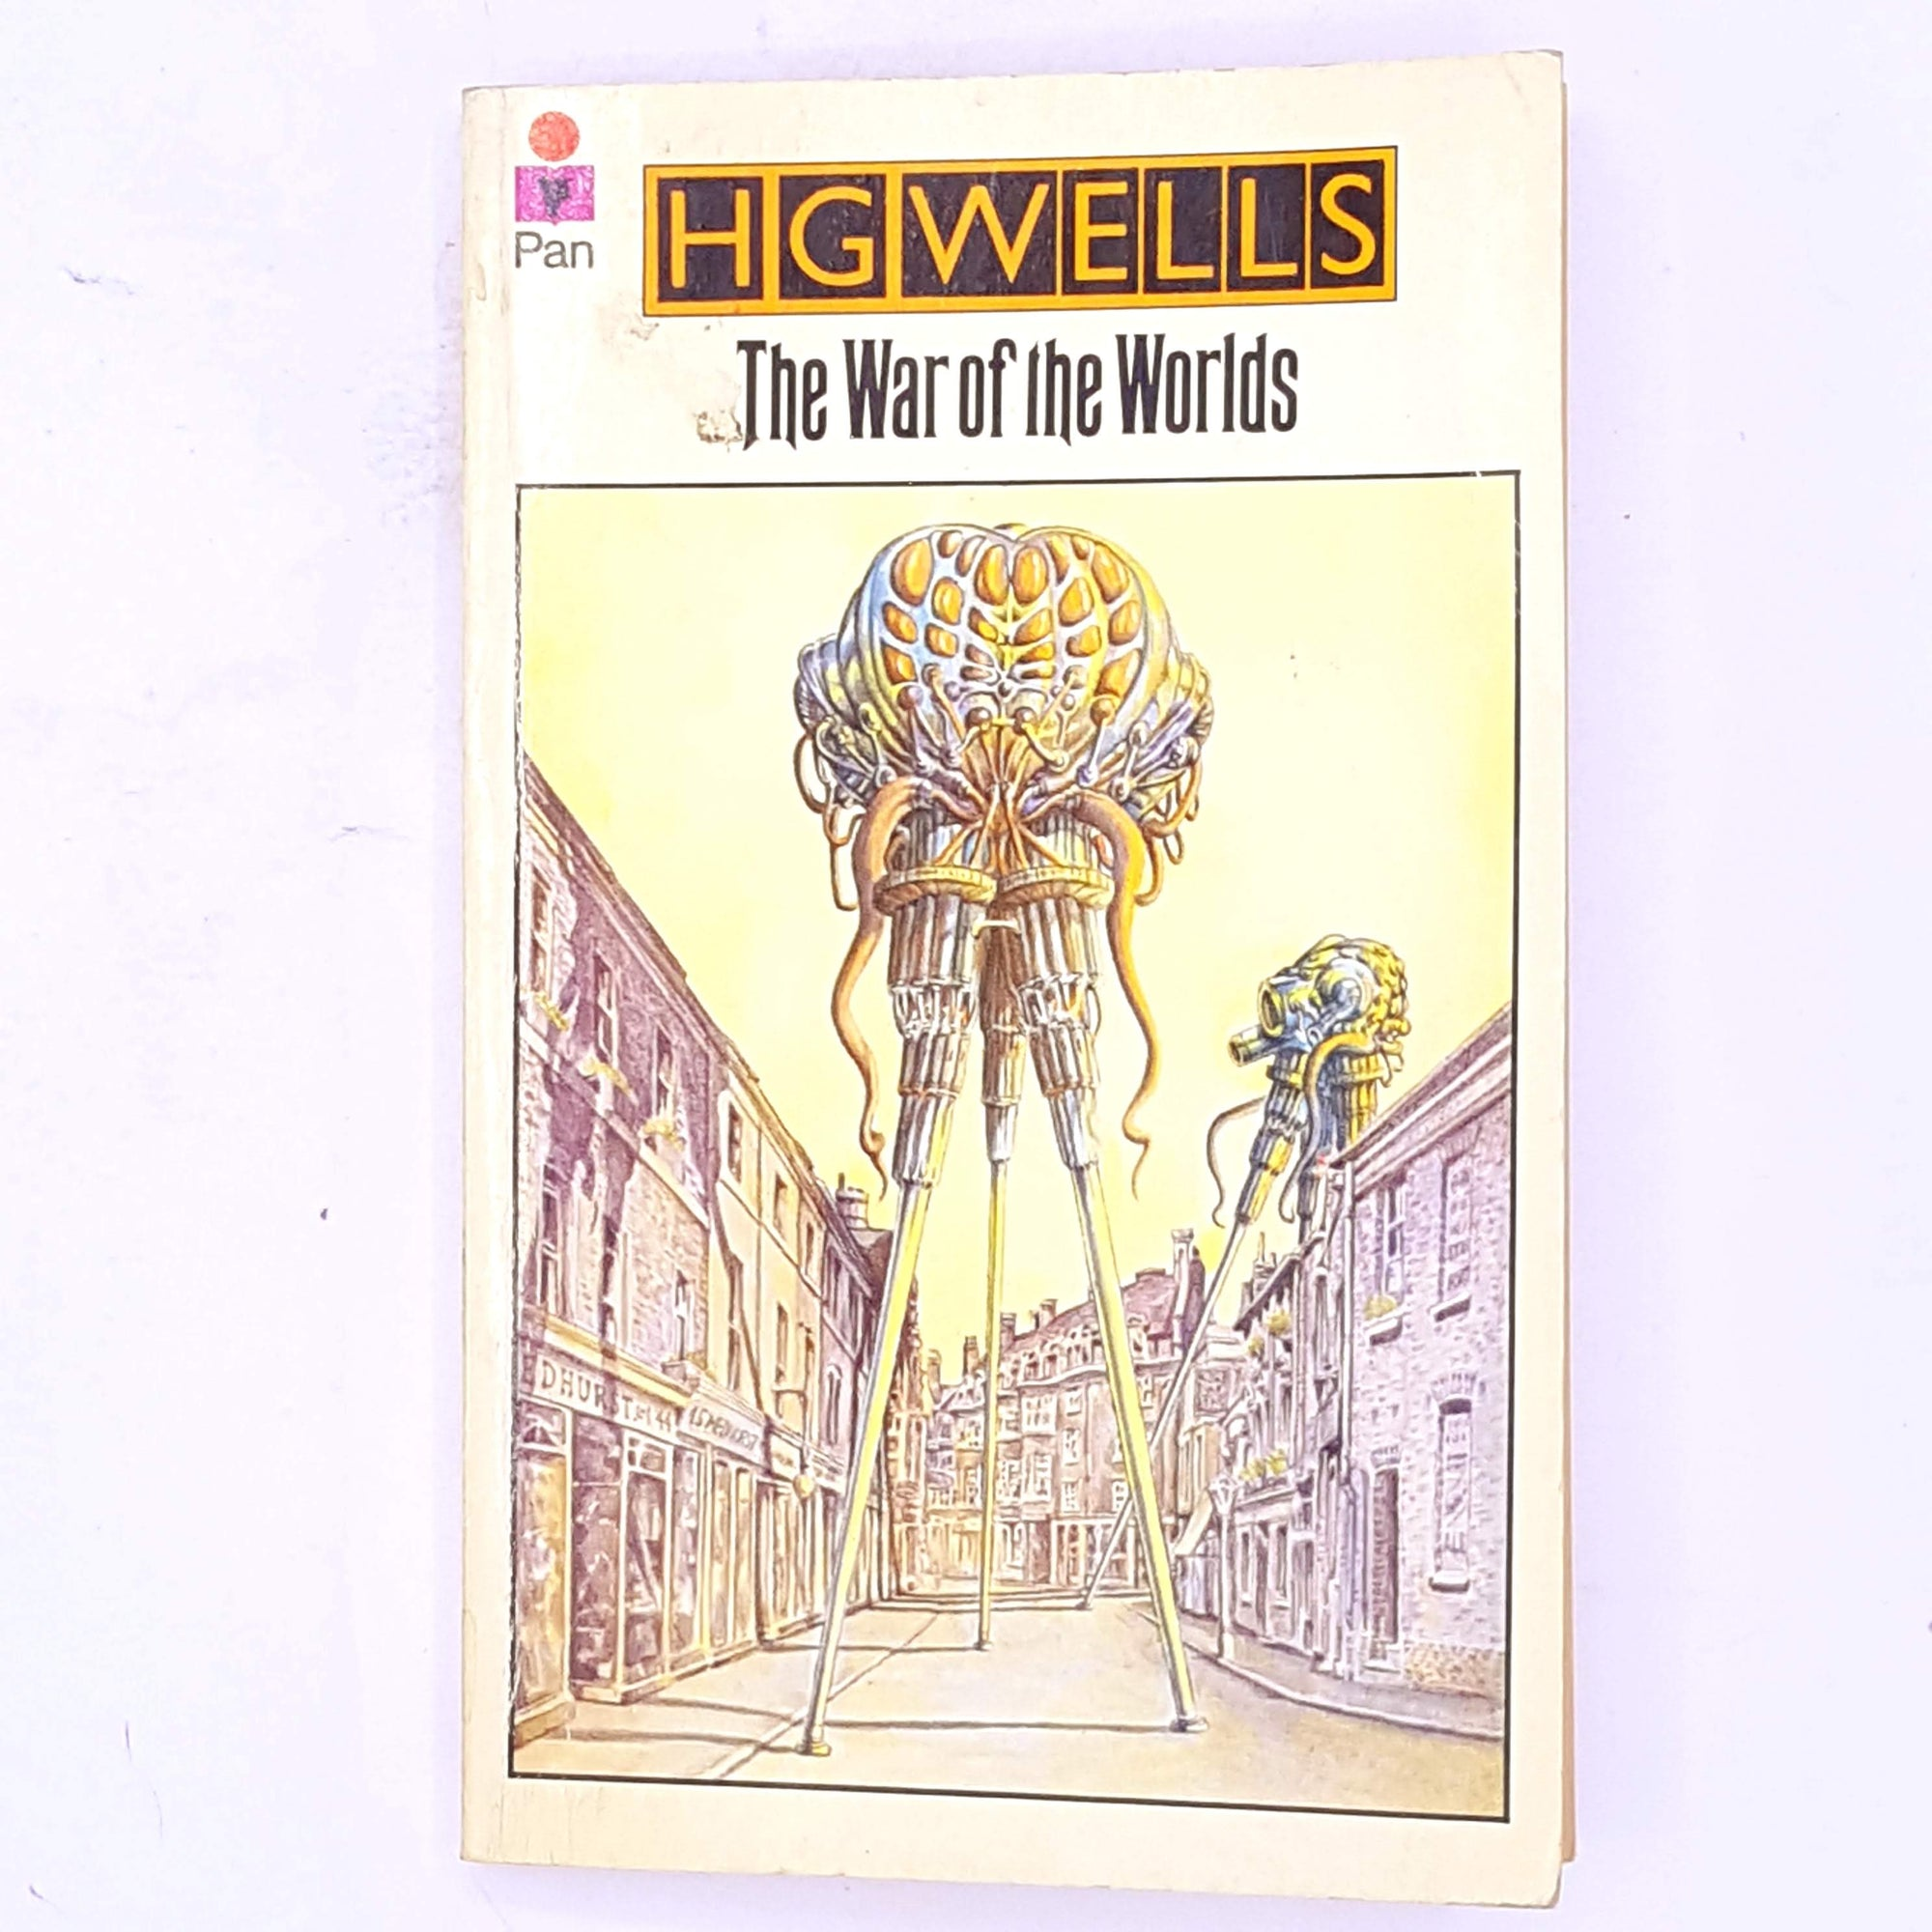 science-fiction-thrift-country-house-library-books-short-stories- decorative-old-the-war-of-the-worlds-antique-H.G.-Wells- patterned-short-story-vintage-classic-